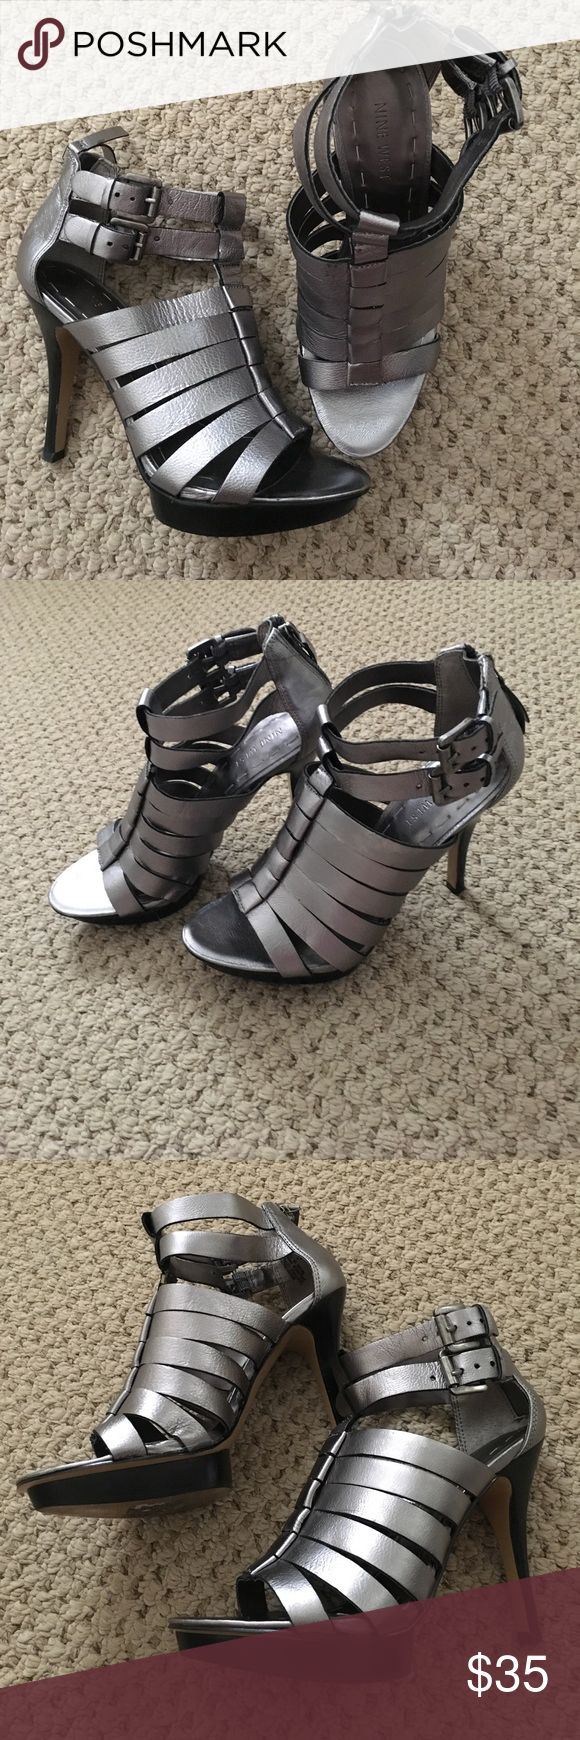 Nine West Silver Strappy Sandals Leather silver strappy platform Nine West heeled sandals. Worn once. Nine West Shoes Heels